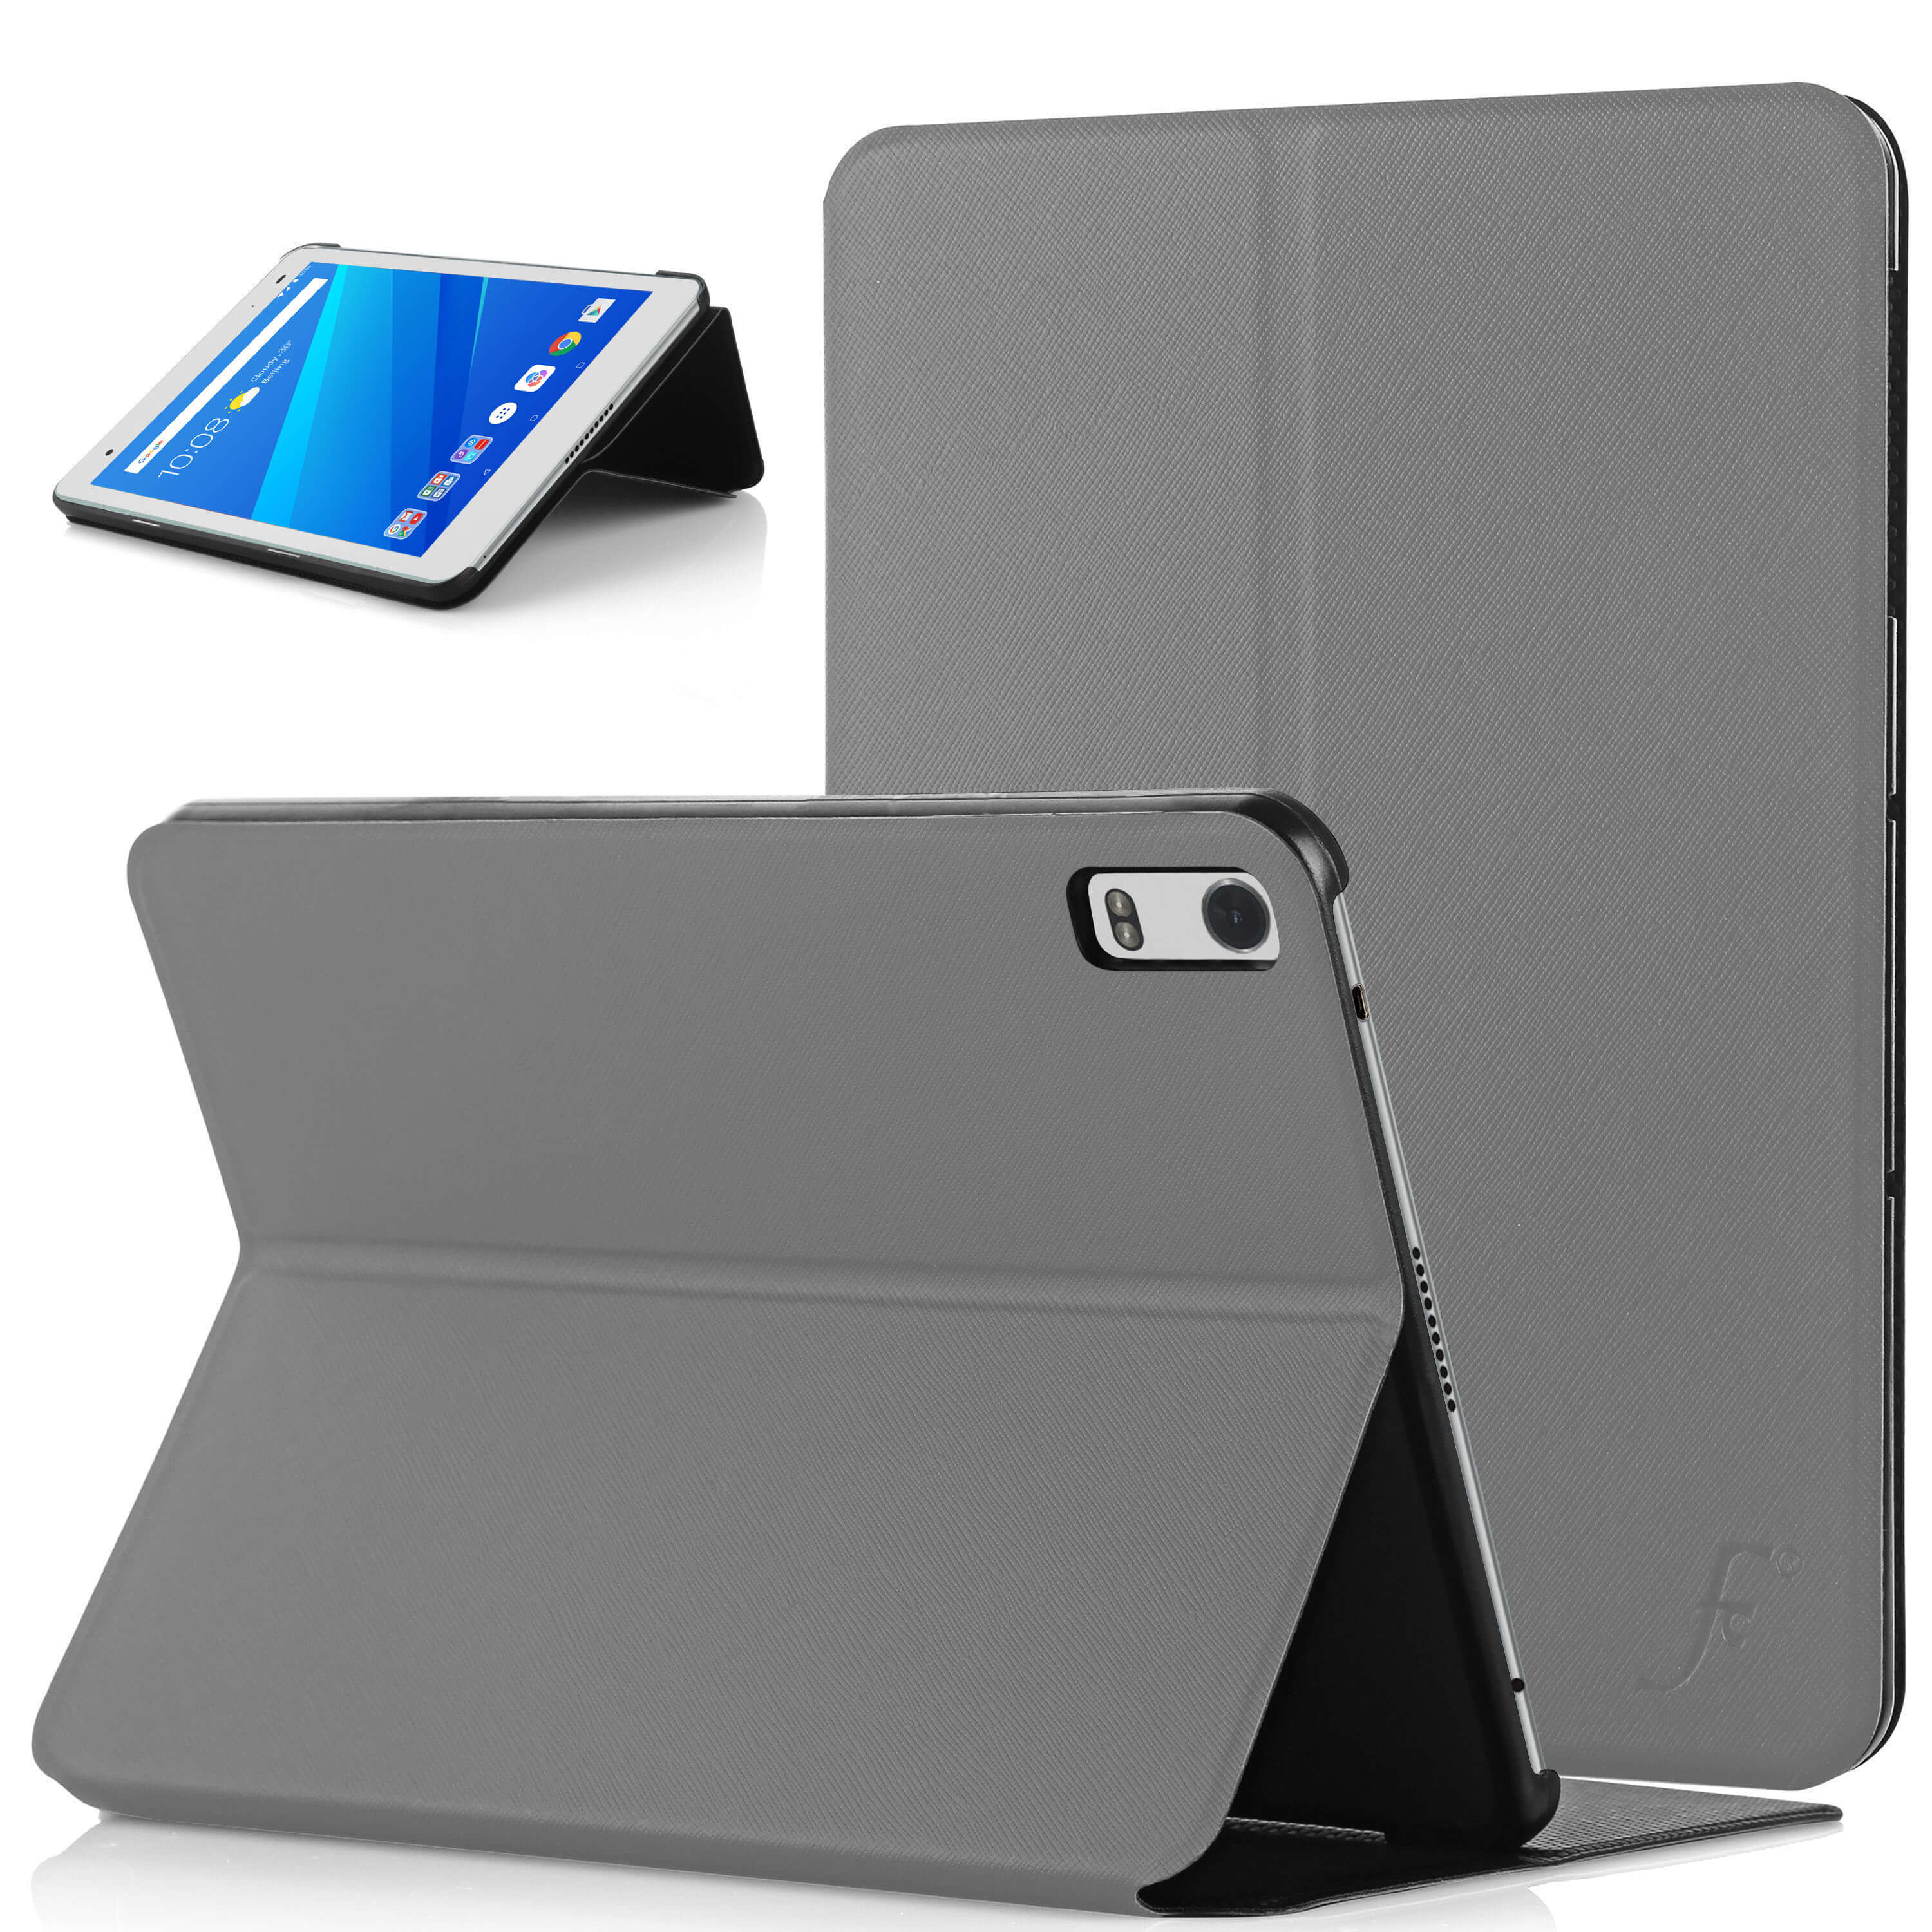 size 40 fe2e4 93973 Forefront Cases® Lenovo Tab 4 8 Plus Clam Shell Smart Case Cover Stand  (GREY)